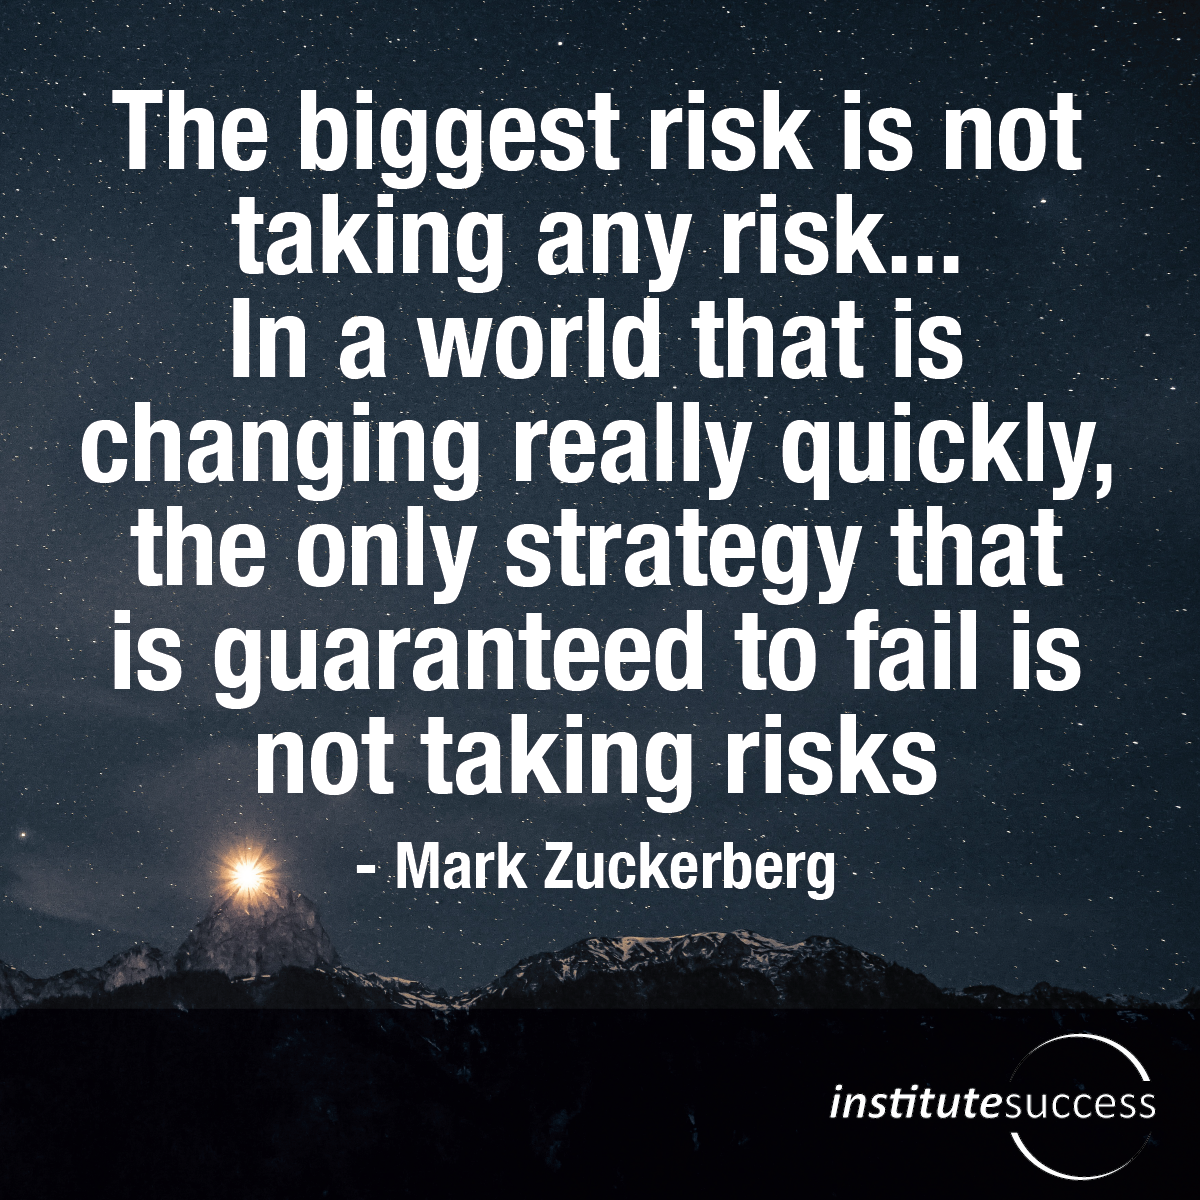 The biggest risk is not taking any risk… In a world that changing really quickly, the only strategy that is guaranteed to fail is not taking risks – Mark Zuckerberg